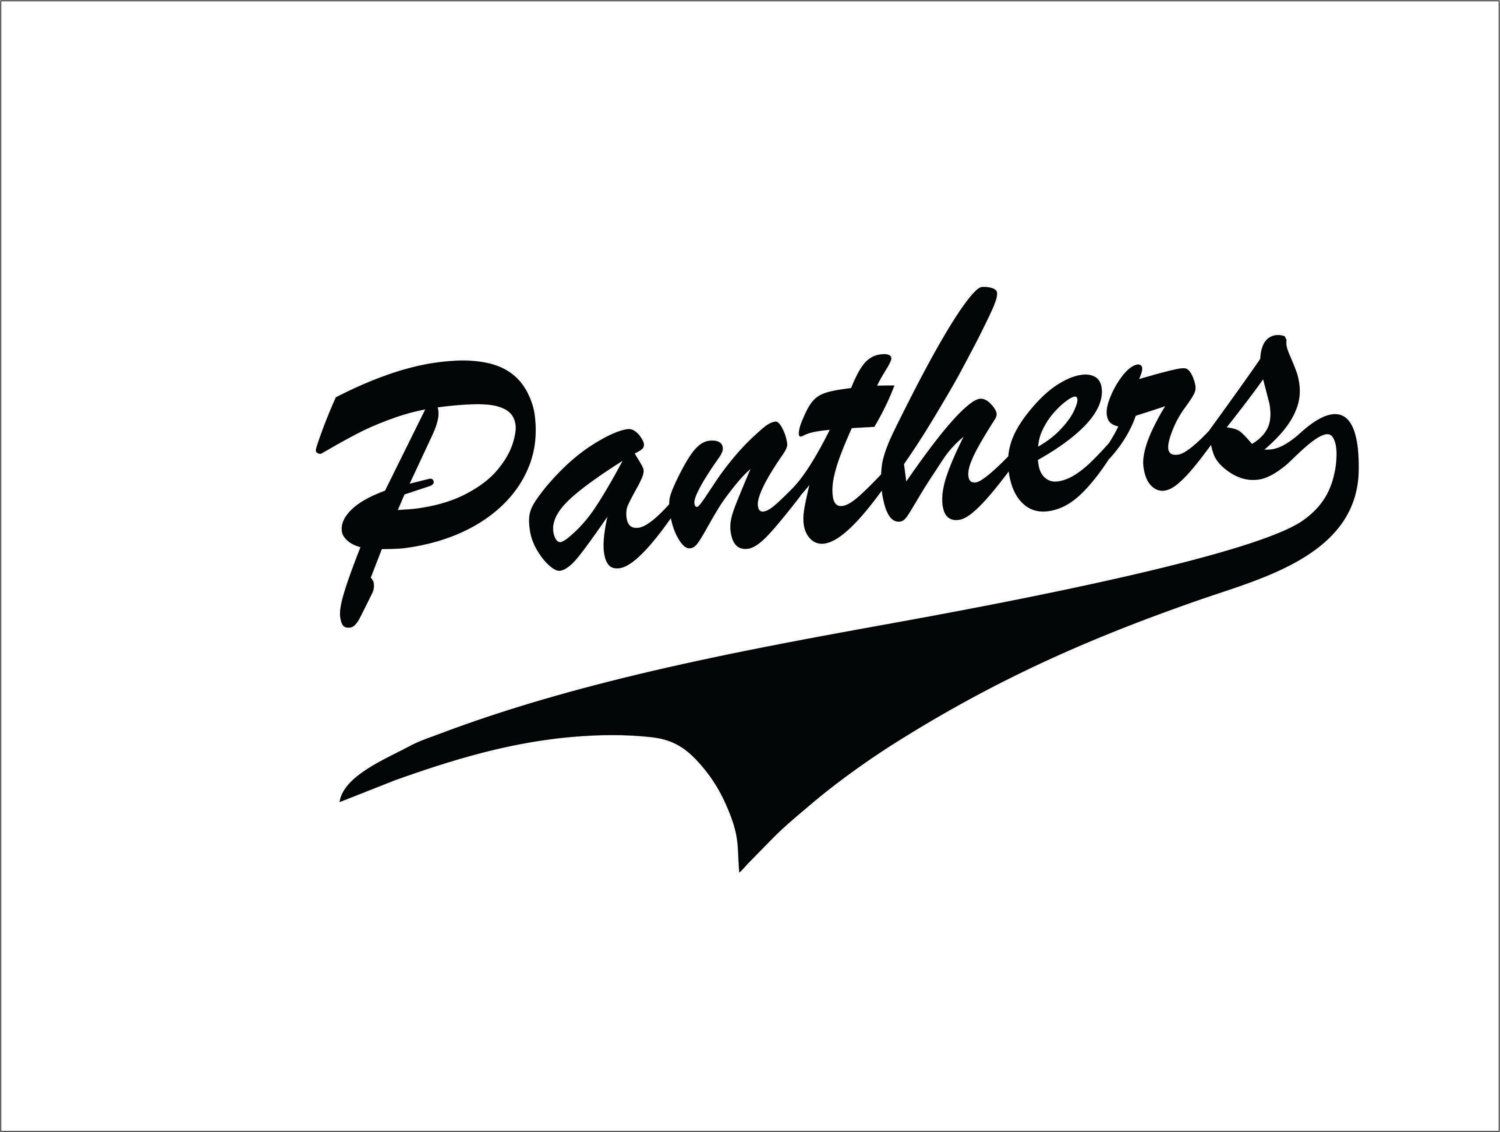 Panthers Script Baseball Softball Word Only With Tale